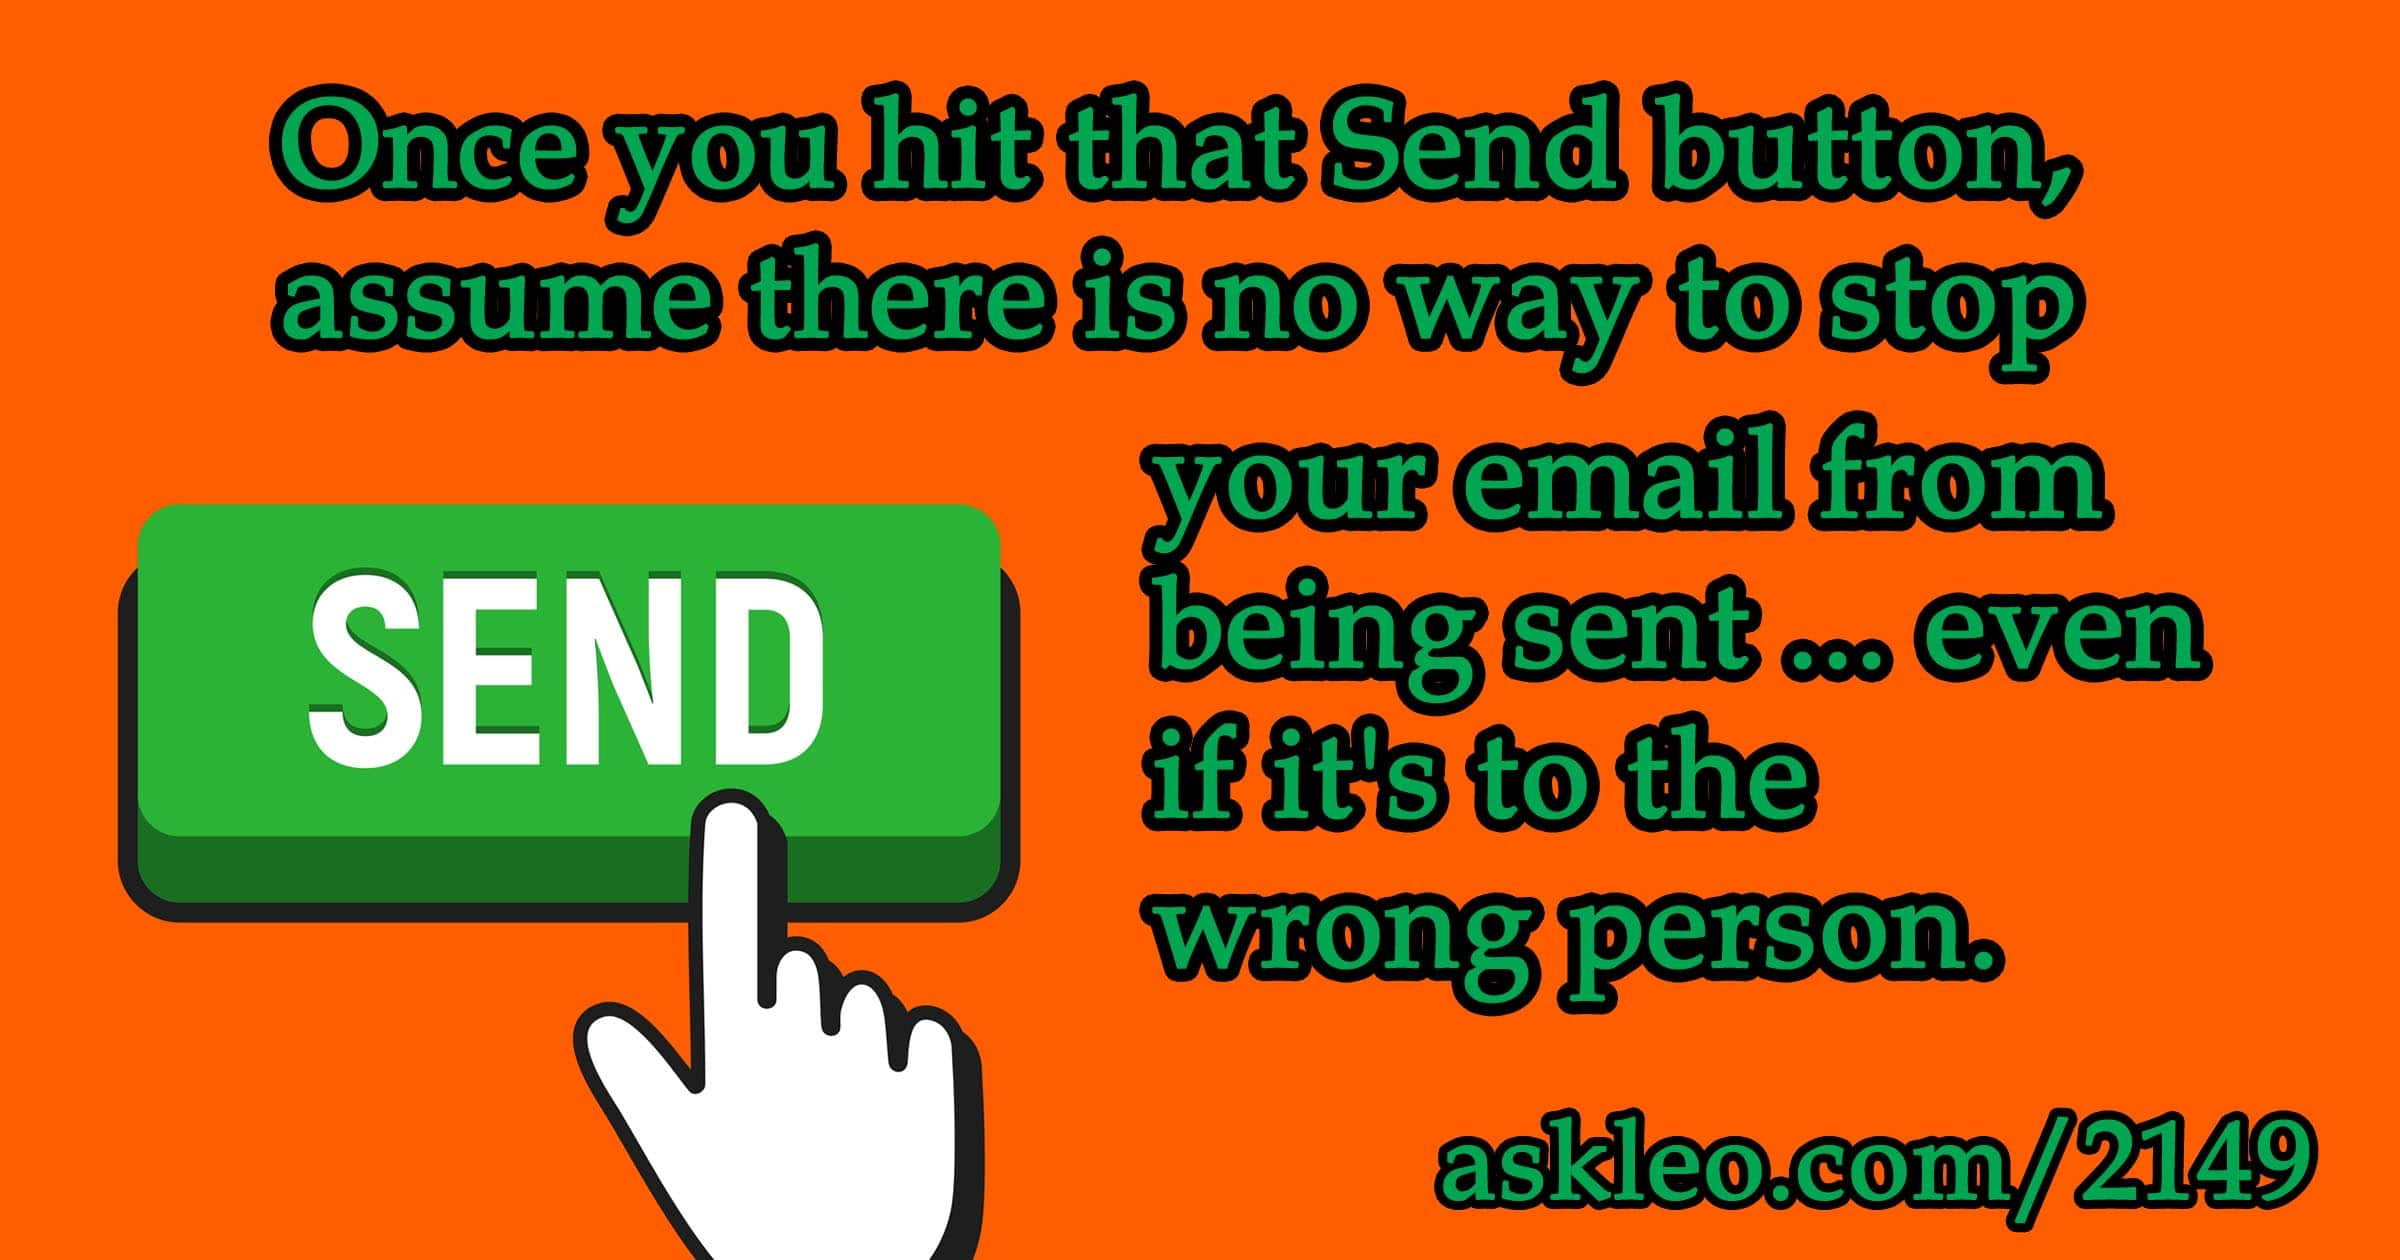 Can I Stop or 'Un-send' an Email I Sent by Mistake? - Ask Leo!